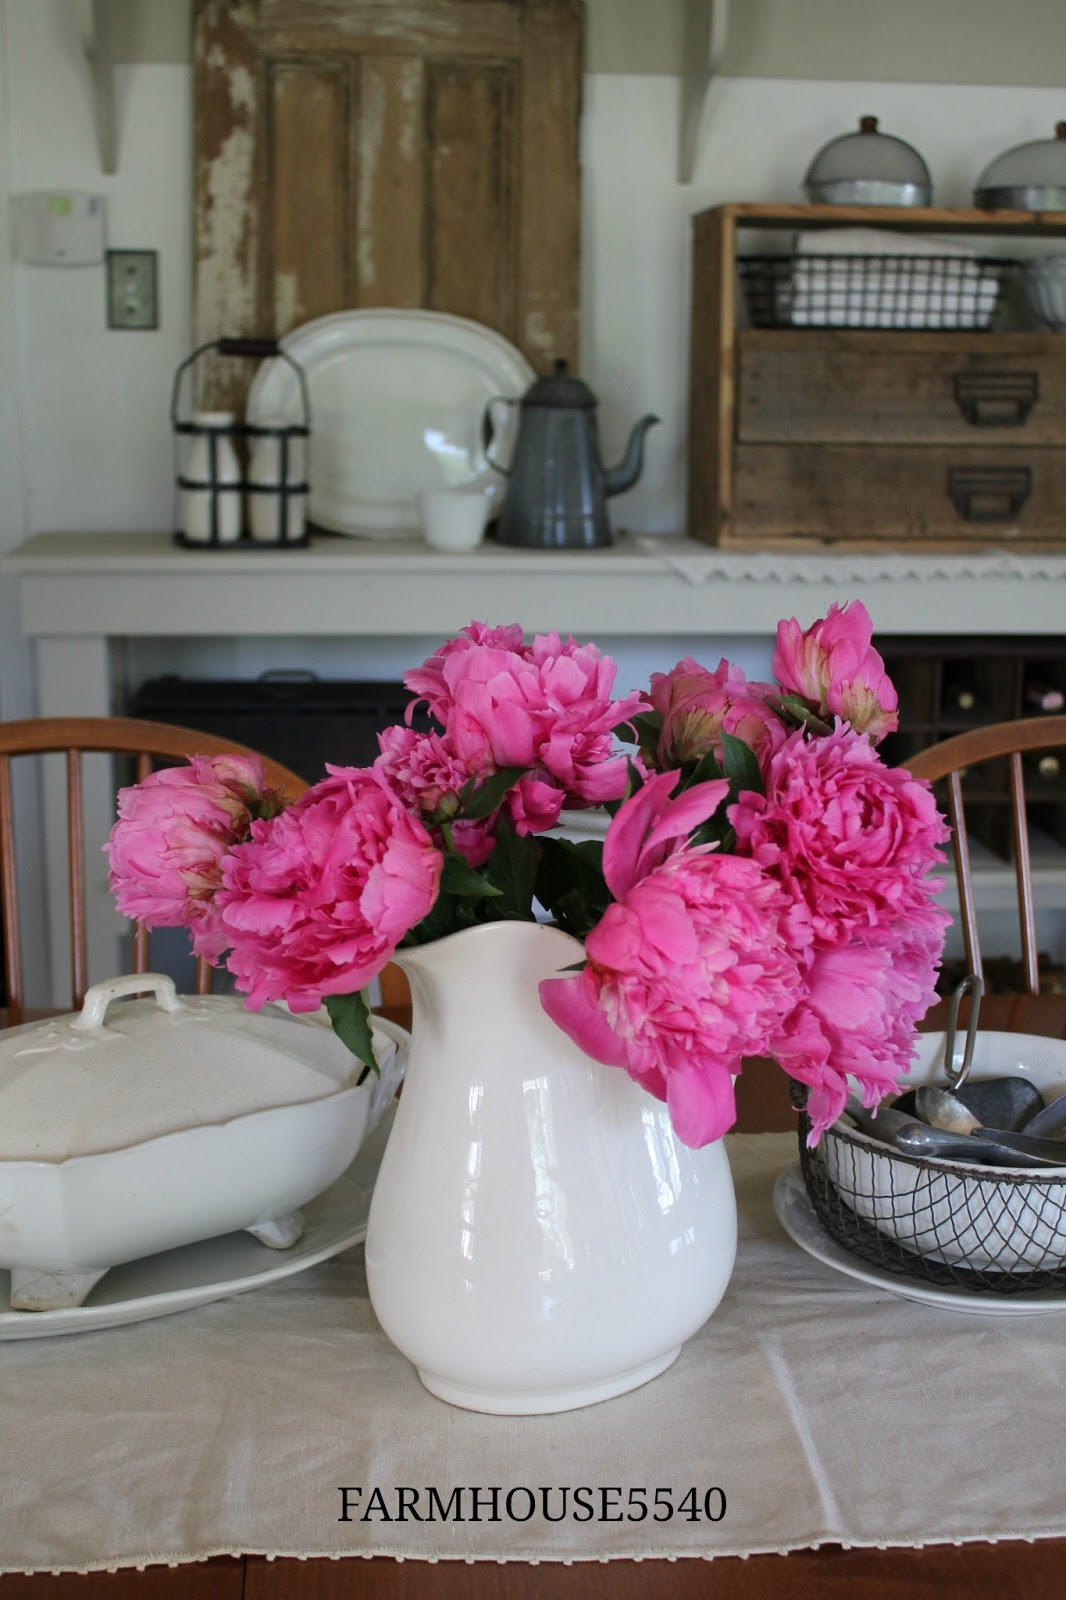 Farmhouse 5540 Peonies In The Dining Room